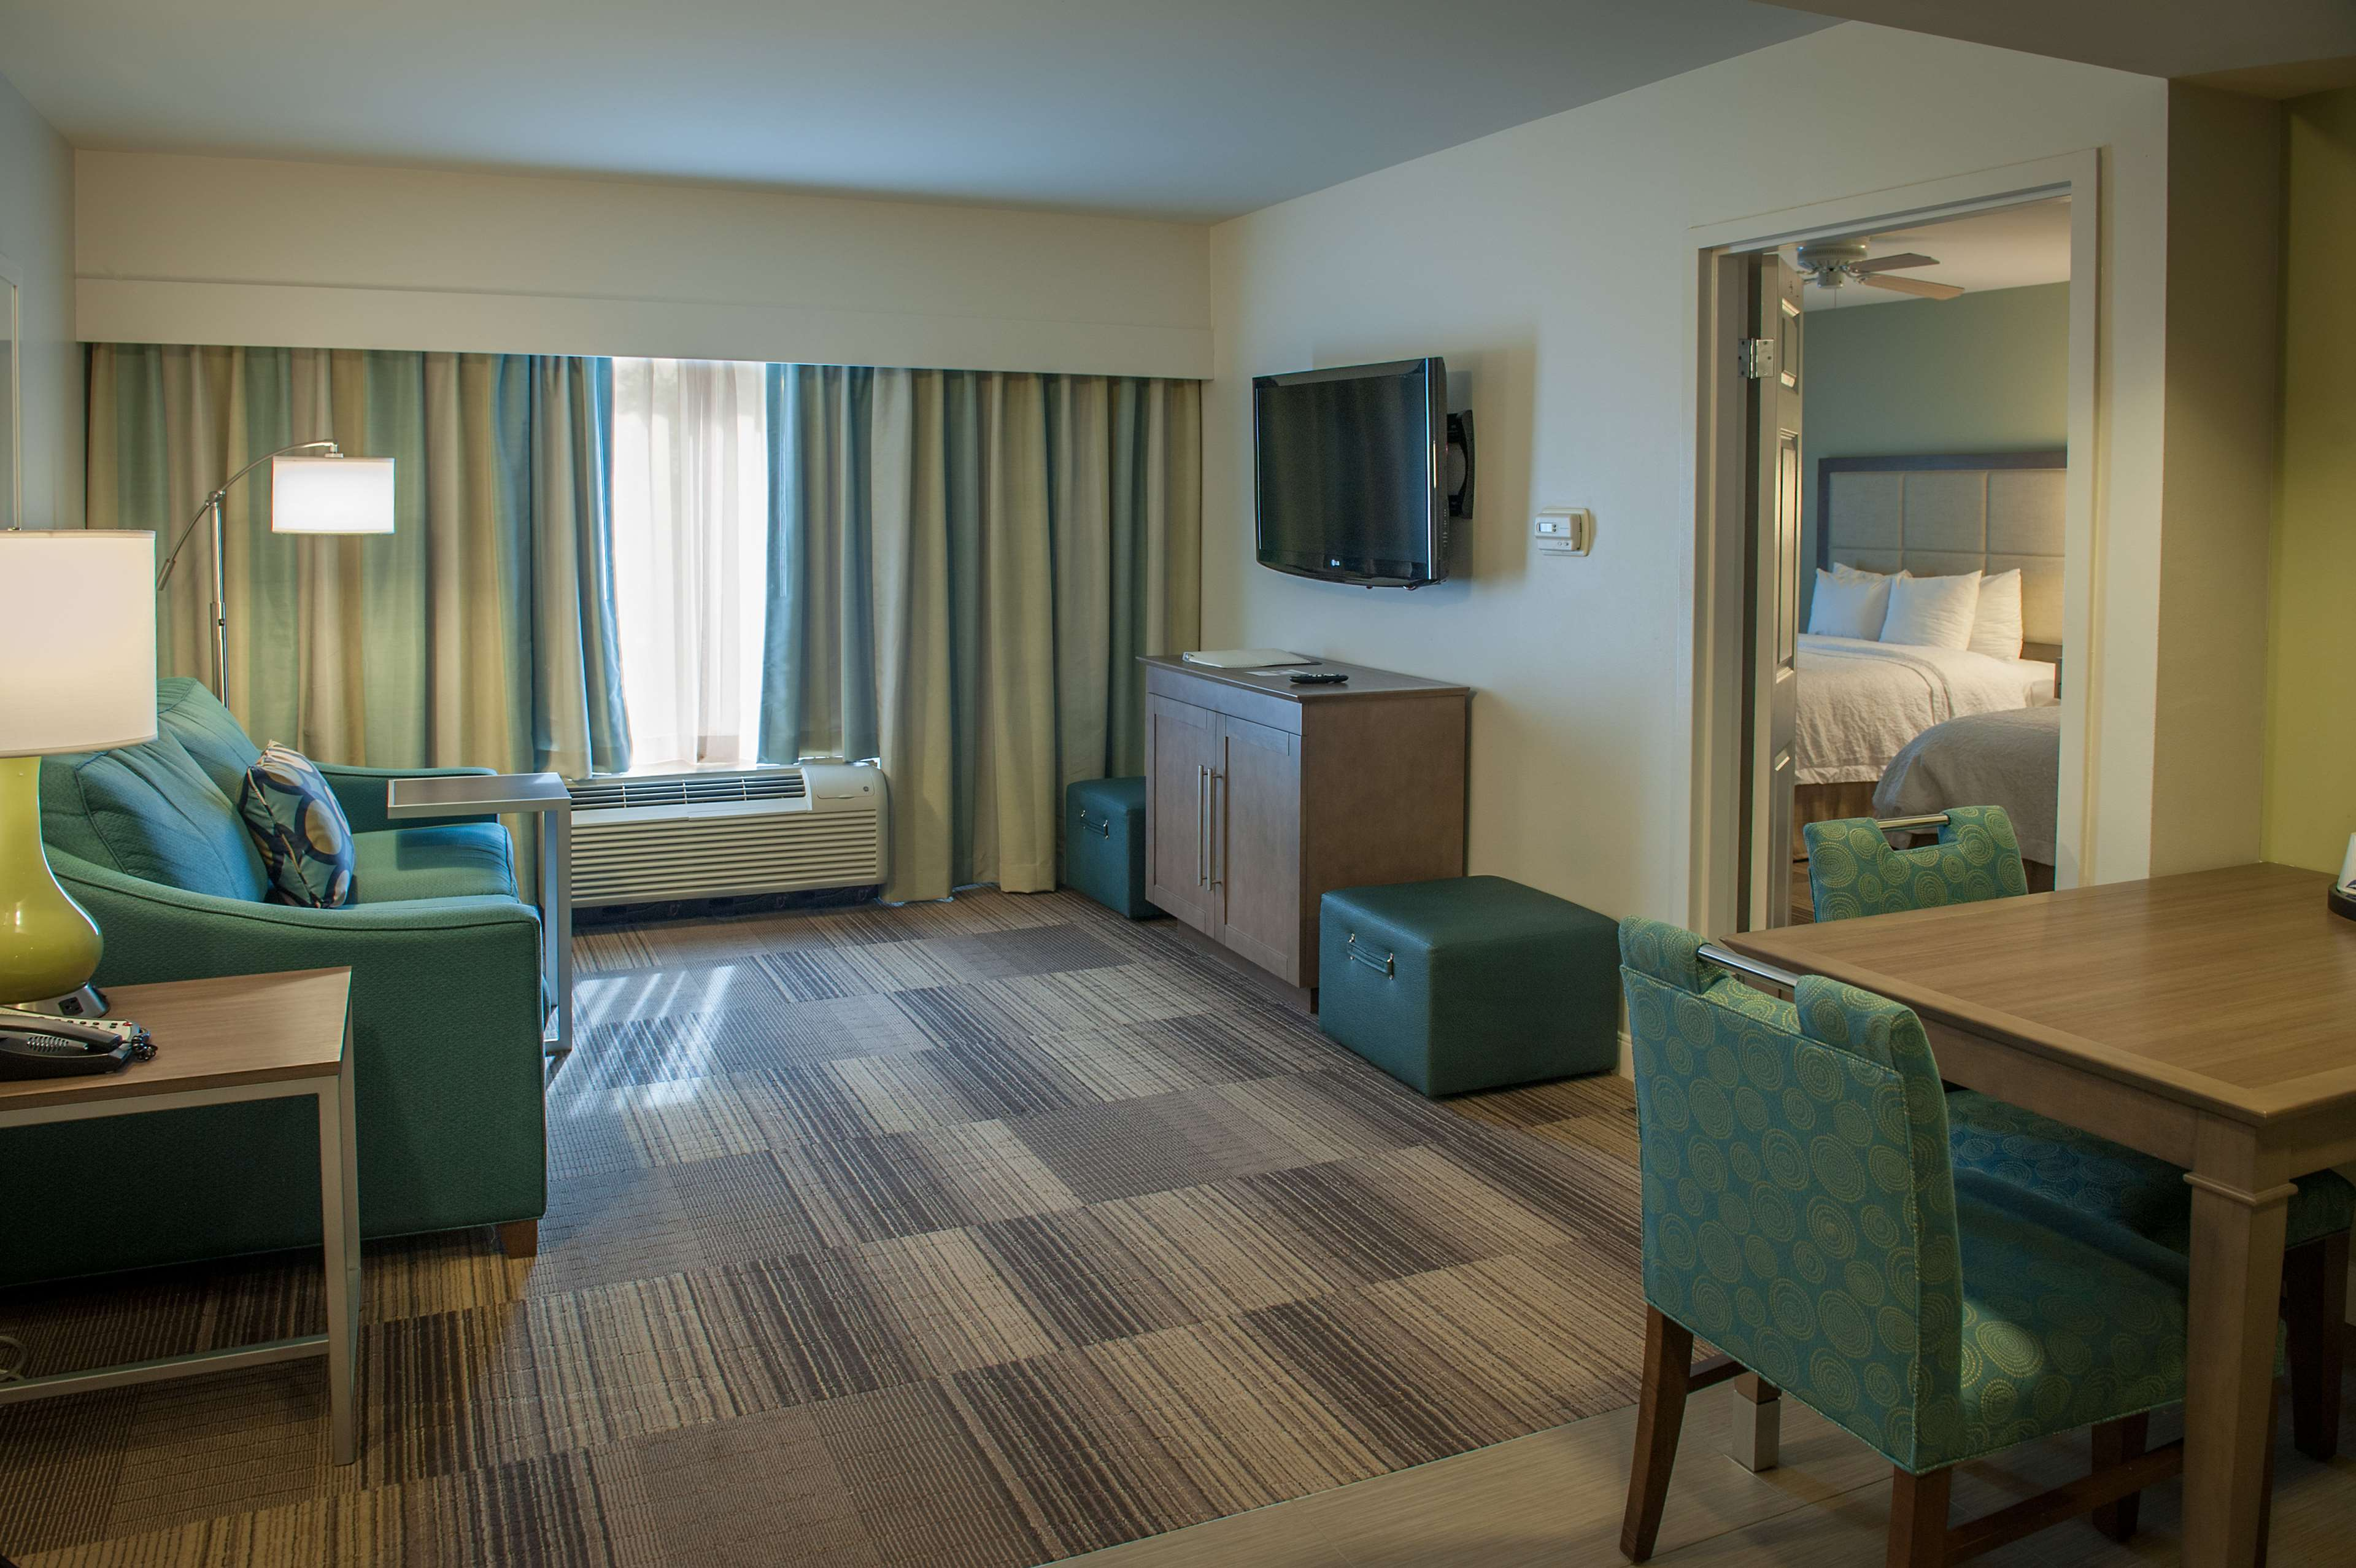 Hampton Inn & Suites New Orleans-Elmwood/Clearview Parkway Area image 20